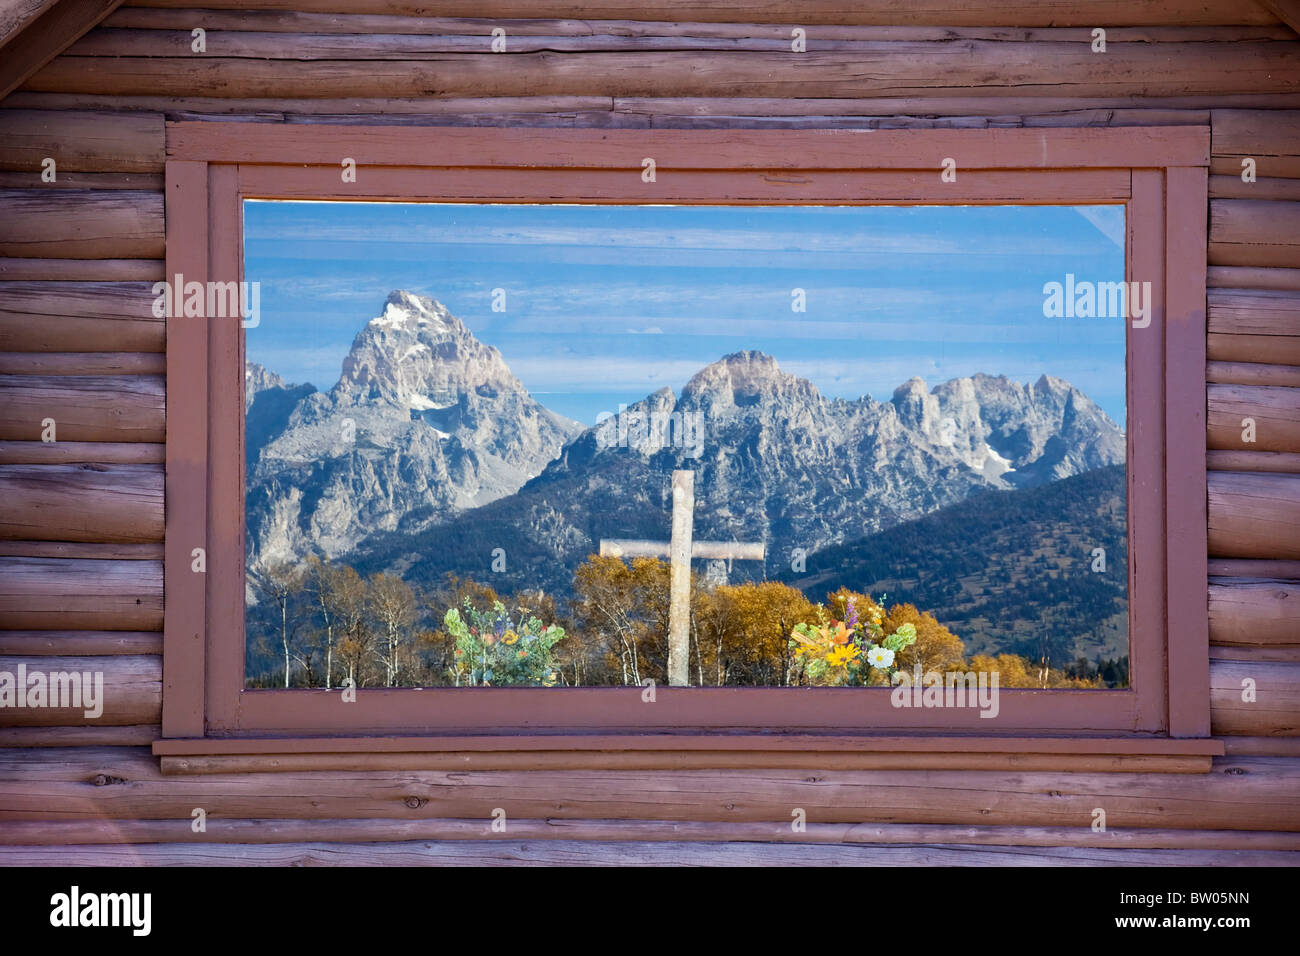 The glorious Grand Teton's reflected in the windows of the little church - Stock Image